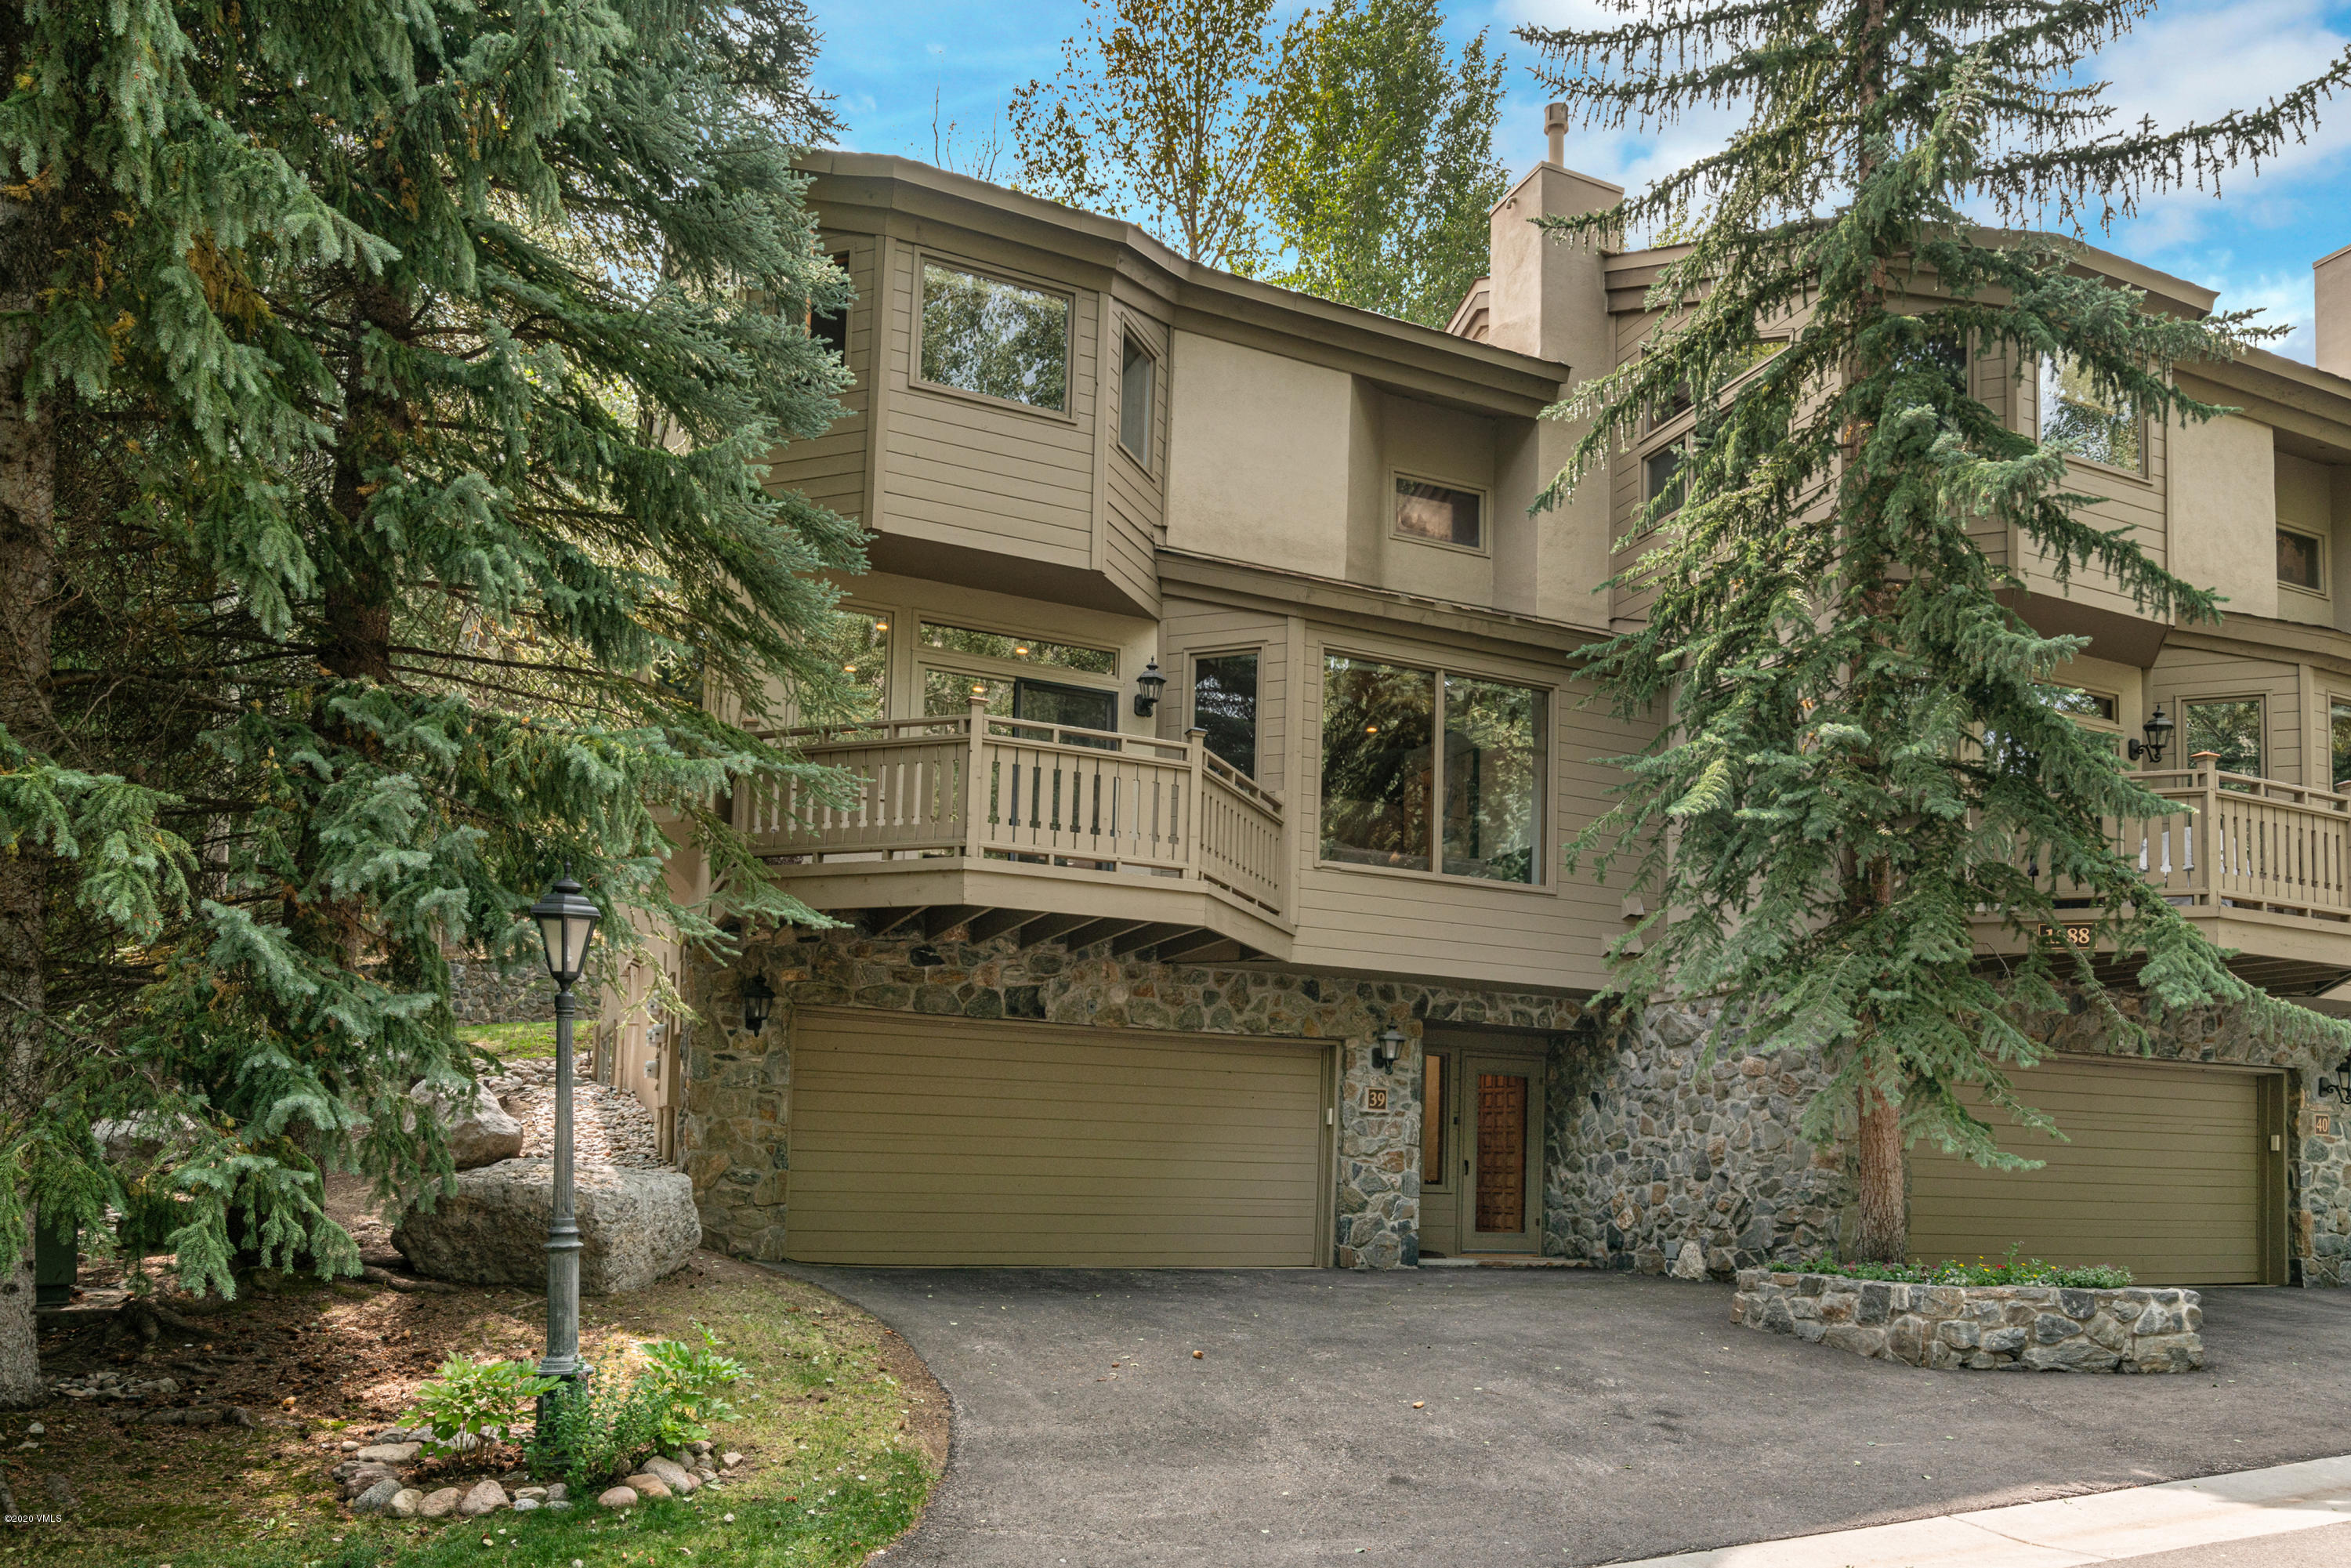 Opportunity to own a beautifully remodeled, contemporary Vail Golf Course Townhome that is light, bright and furnished.  This mountain modern retreat has been remodeled and reconfigured to maximize the space and storage with hidden closets thus no shortage of room for all the gear of the outdoor enthusiast, while still maintaining a clean look. There is plenty of space for the whole family, including the upstairs loft that has been turned into a 5th bedroom with a full bathroom  (although may be a non conforming entrance), pull out wardrobe closet and a gorgeous view of the Gore Range. Enjoy the largest patio in the Vail Golfcourse Townhomes with a gas fireplace and side yard, enclosed with a stone wall and shrubs for added privacy.  Other features include tons of added canned lighting throughout for a gorgeous bright feel, Sonos built-in sound system, modern gas fireplace in the living room, nest thermostats and completely renovated bathrooms.  The remodel added bathrooms so that all bedrooms have their own bathroom. This is an ideal layout for having many friends and family gather. The Vail Golf Course Neighborhood is one of the most unique locations in the Vail Valley and has some of the most majestic views of the Gore Range Mountains. The Vail Golf Course is located immediately adjacent to Vail Village's Golden Peak ski base. This beautiful golf course community is home to some of the Vail Valley's first residents, many of whom formed some of Vail's original businesses. Why would the earliest locals select this area and remain for so many decades? Due to the unique location that includes the only bus route in Vail (other than the in Vail Village route) that drops you right at the ski school and ski slopes in Vail, rather than at the transportation center. In addition, it is the shortest route of all the free Vail shuttle routes making an already convenient ride even more so. In the summer months you can just walk or ride your bike to the Vail Village, or take in a Bravo Vail! or Dance event at the Ford Amphitheater, which is located between Vail Village and the Vail Golf Course and offers many concerts, special events, and performances throughout the year. In addition to Gore Creek running through the area and prominent views of the Gore Range, the Vail Golf Course neighborhood is home to the renowned public Vail Golf Course, which also operates as a cross country ski area in the winter time and has a great restaurant and patio for enjoying great food and drinks. The Vail Golf Course offers some of the most sought after property locations in the Vail Valley. Please visit mls.VailGolfCourseTownhome.com for complete details.